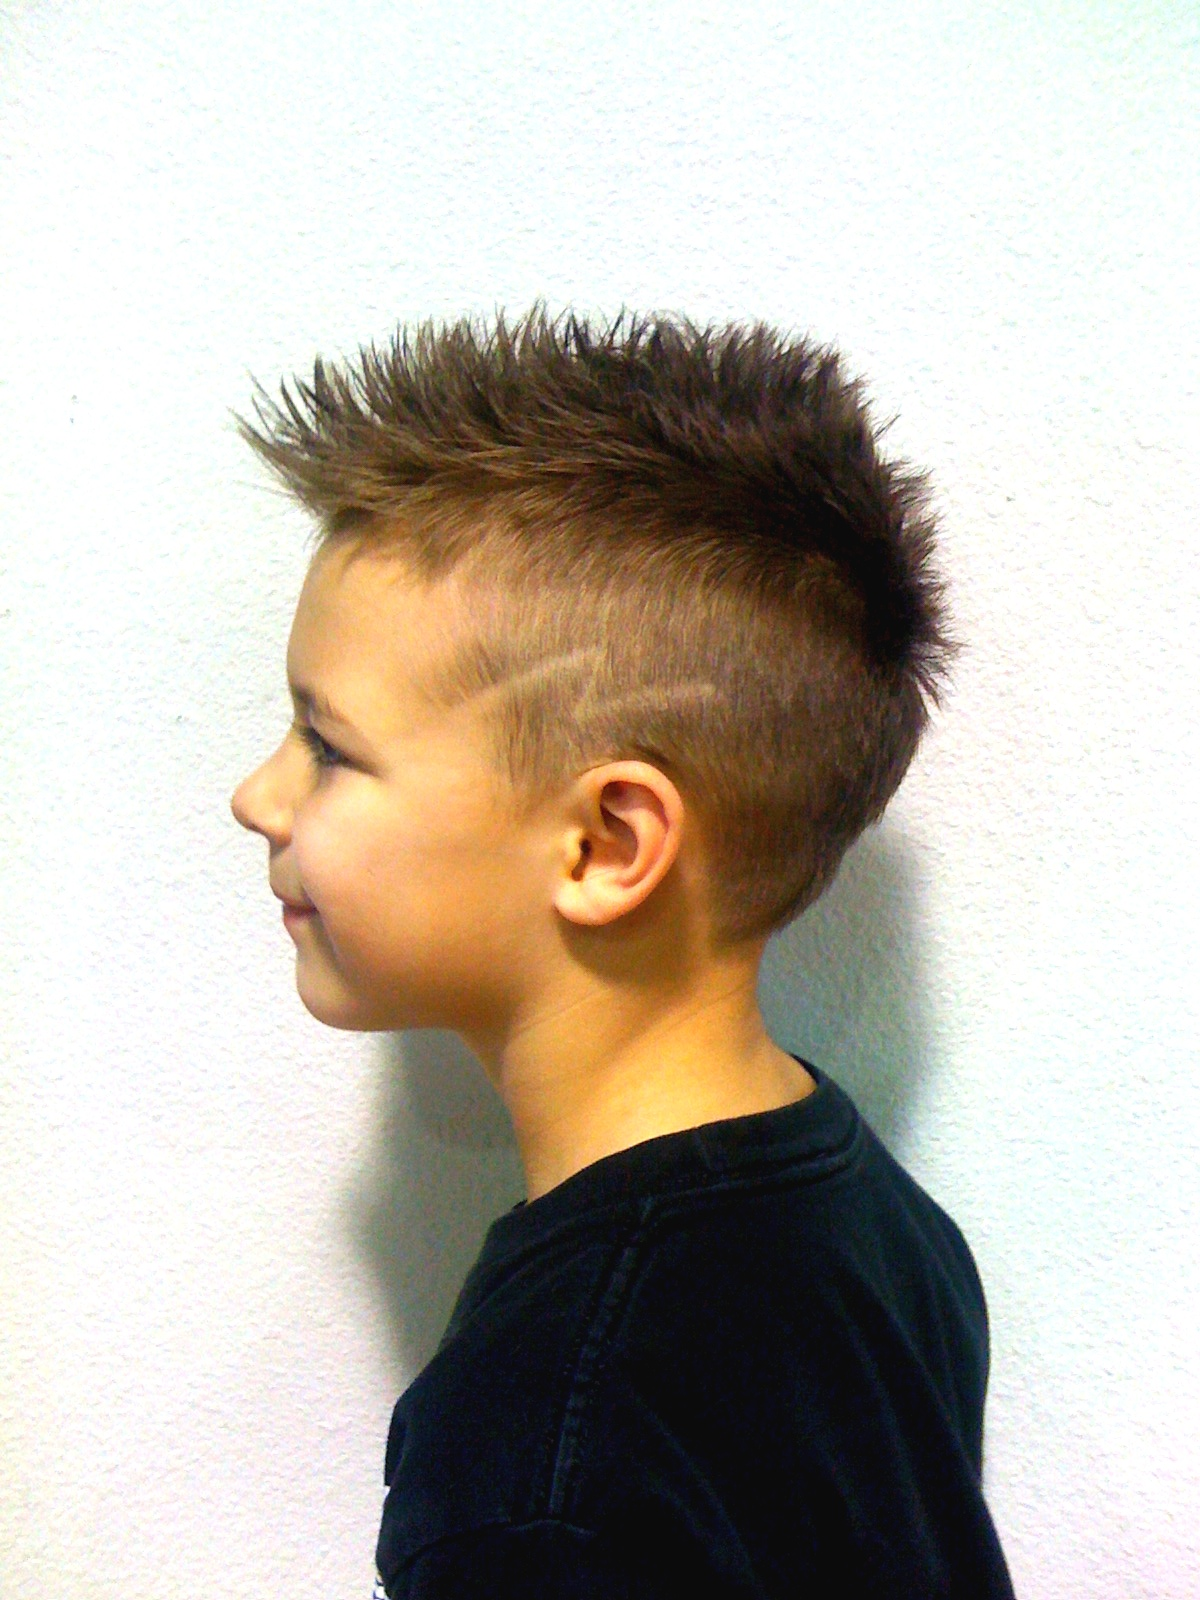 Haircut designs in the back of head